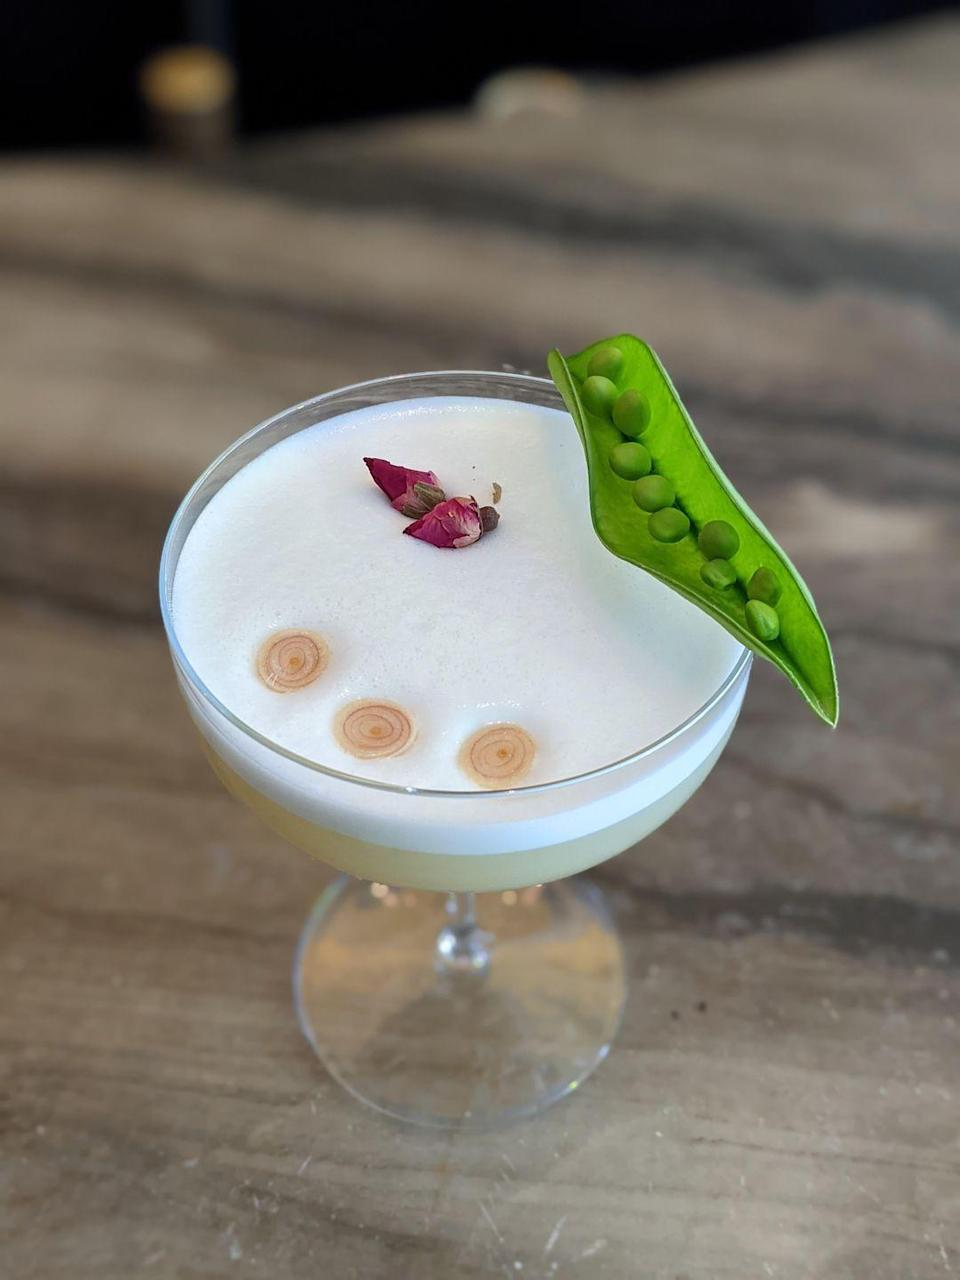 <p>Created by Rami Levy, the bar manager at Bustan in New York City, this whimsical cocktail features a few spring garden delights: snap peas, meyer lemon, and lemongrass.</p><p><strong>Ingredients:</strong></p><p>2 ounces Rosolio di Bergamotto</p><p>1 ounce Vodka Kāstra Eliōn</p><p>3/4 ounce aquafaba</p><p>3/4 ounce meyer lemon juice</p><p>3 snap peas</p><p>2 thin slices lemongrass</p><p>rose water</p><p><strong>Directions:</strong></p><ol><li>Combine the lemongrass and snap peas in a shaker and lightly muddle.</li><li> Add the rest of the ingredients with a dash of rose water.</li><li>Shake, add ice and shake again.</li></ol>